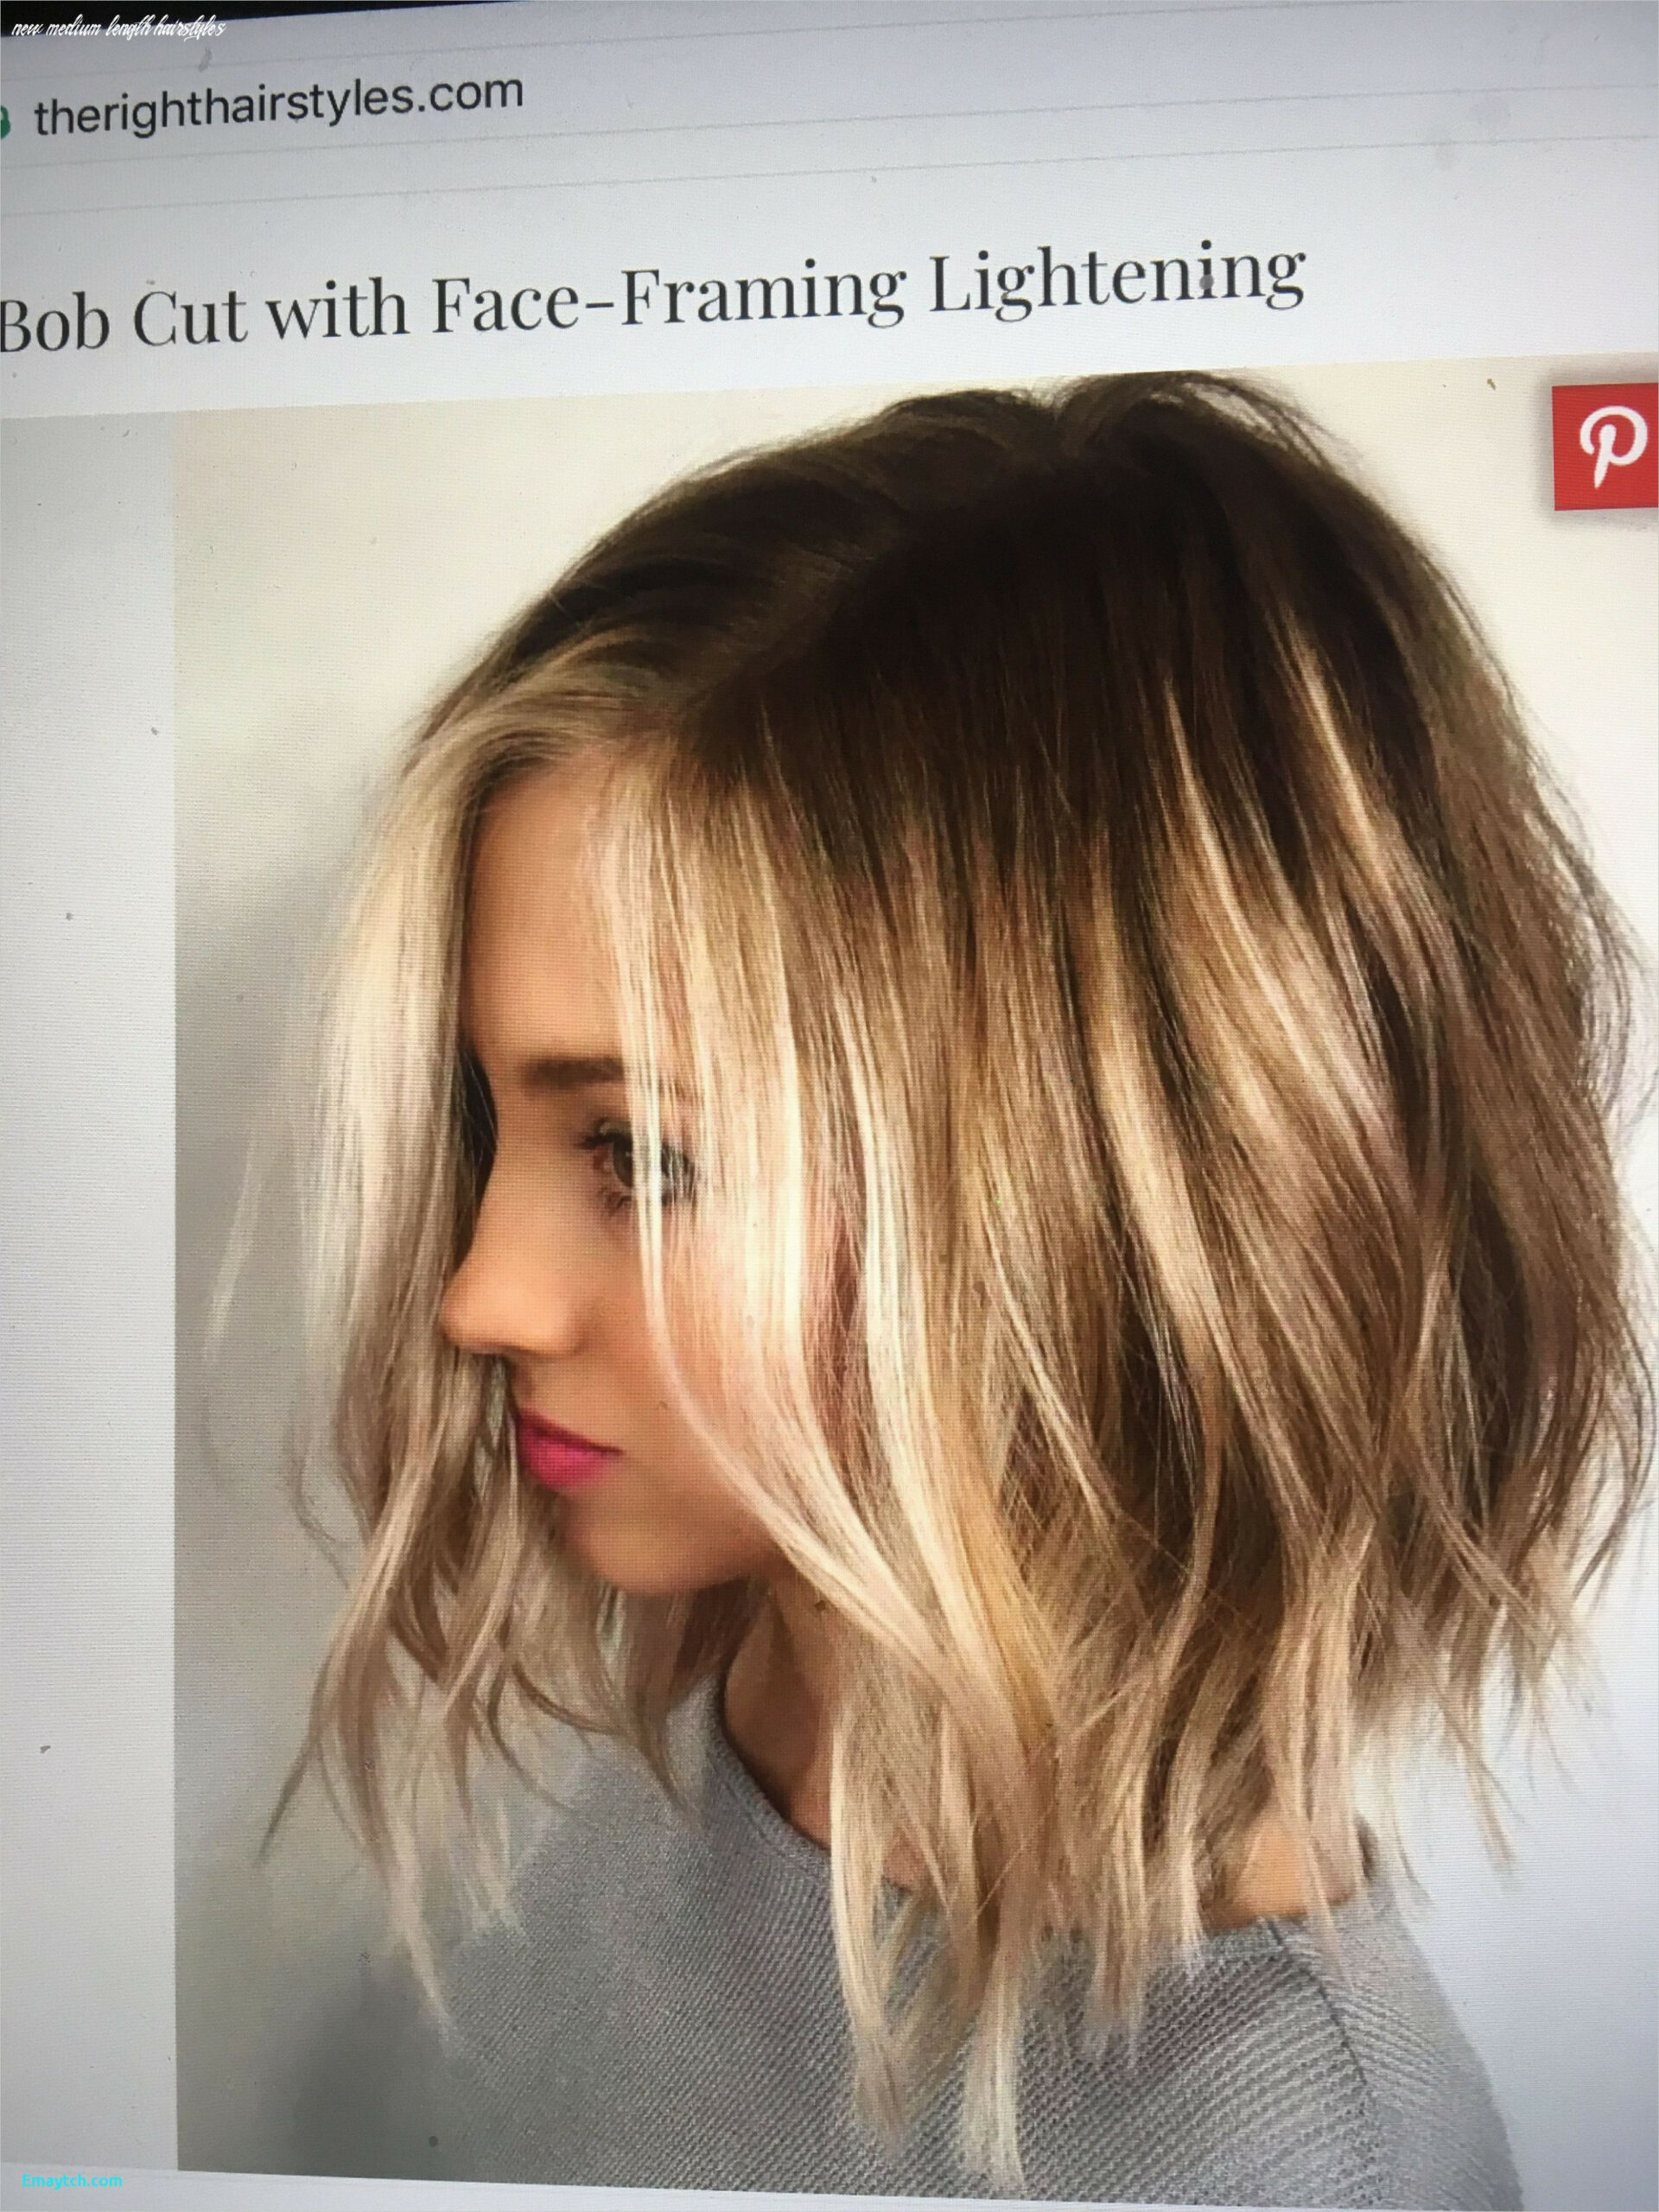 Pin on hair/accessories/nails new medium length hairstyles